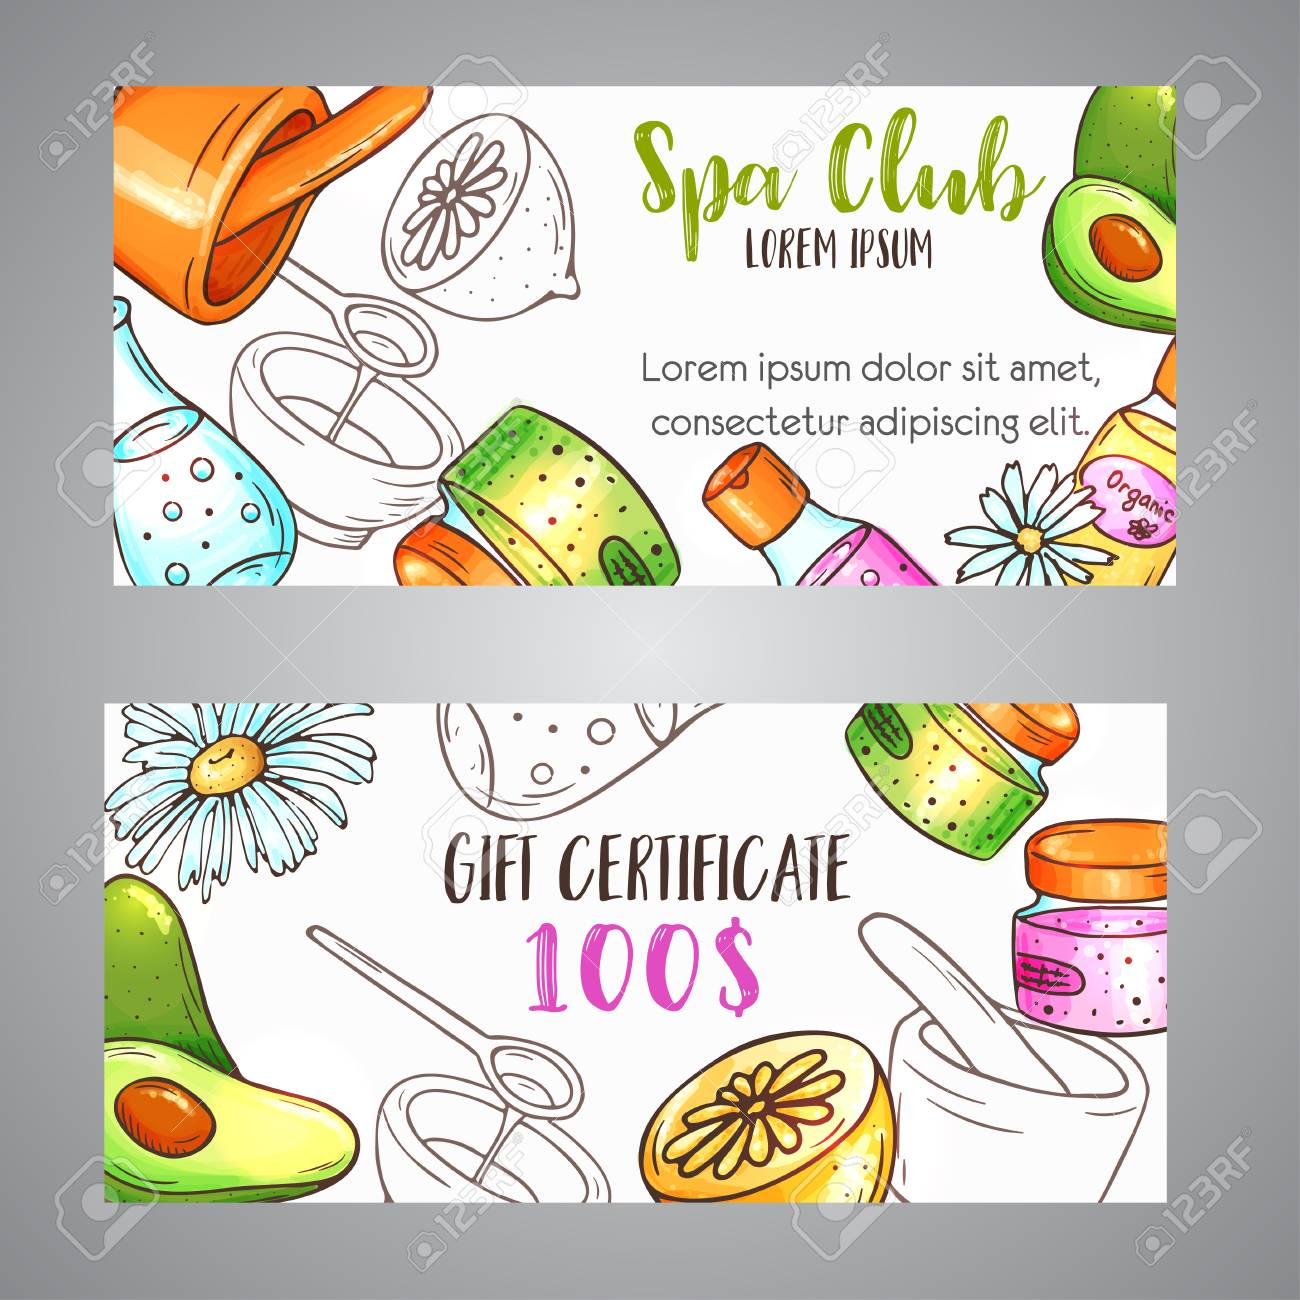 Spa Gift Certificate Hand Drawn Cosmetics And Aromatherapy Elements